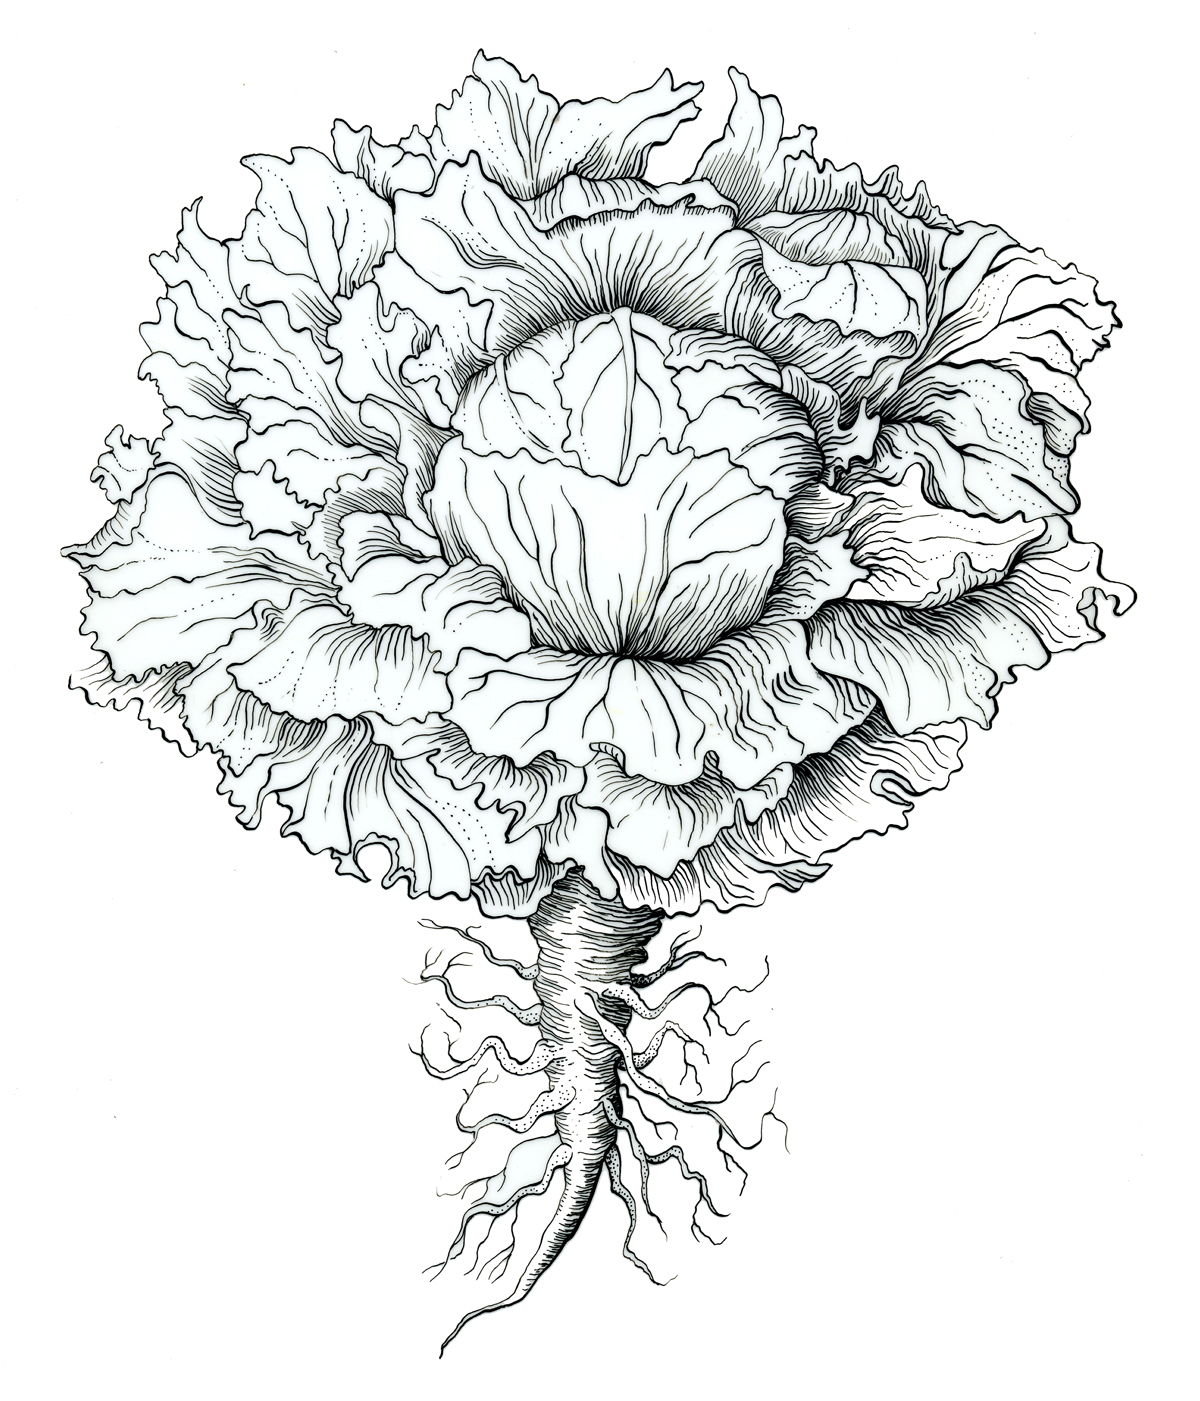 Lettuce Drawing At Getdrawings